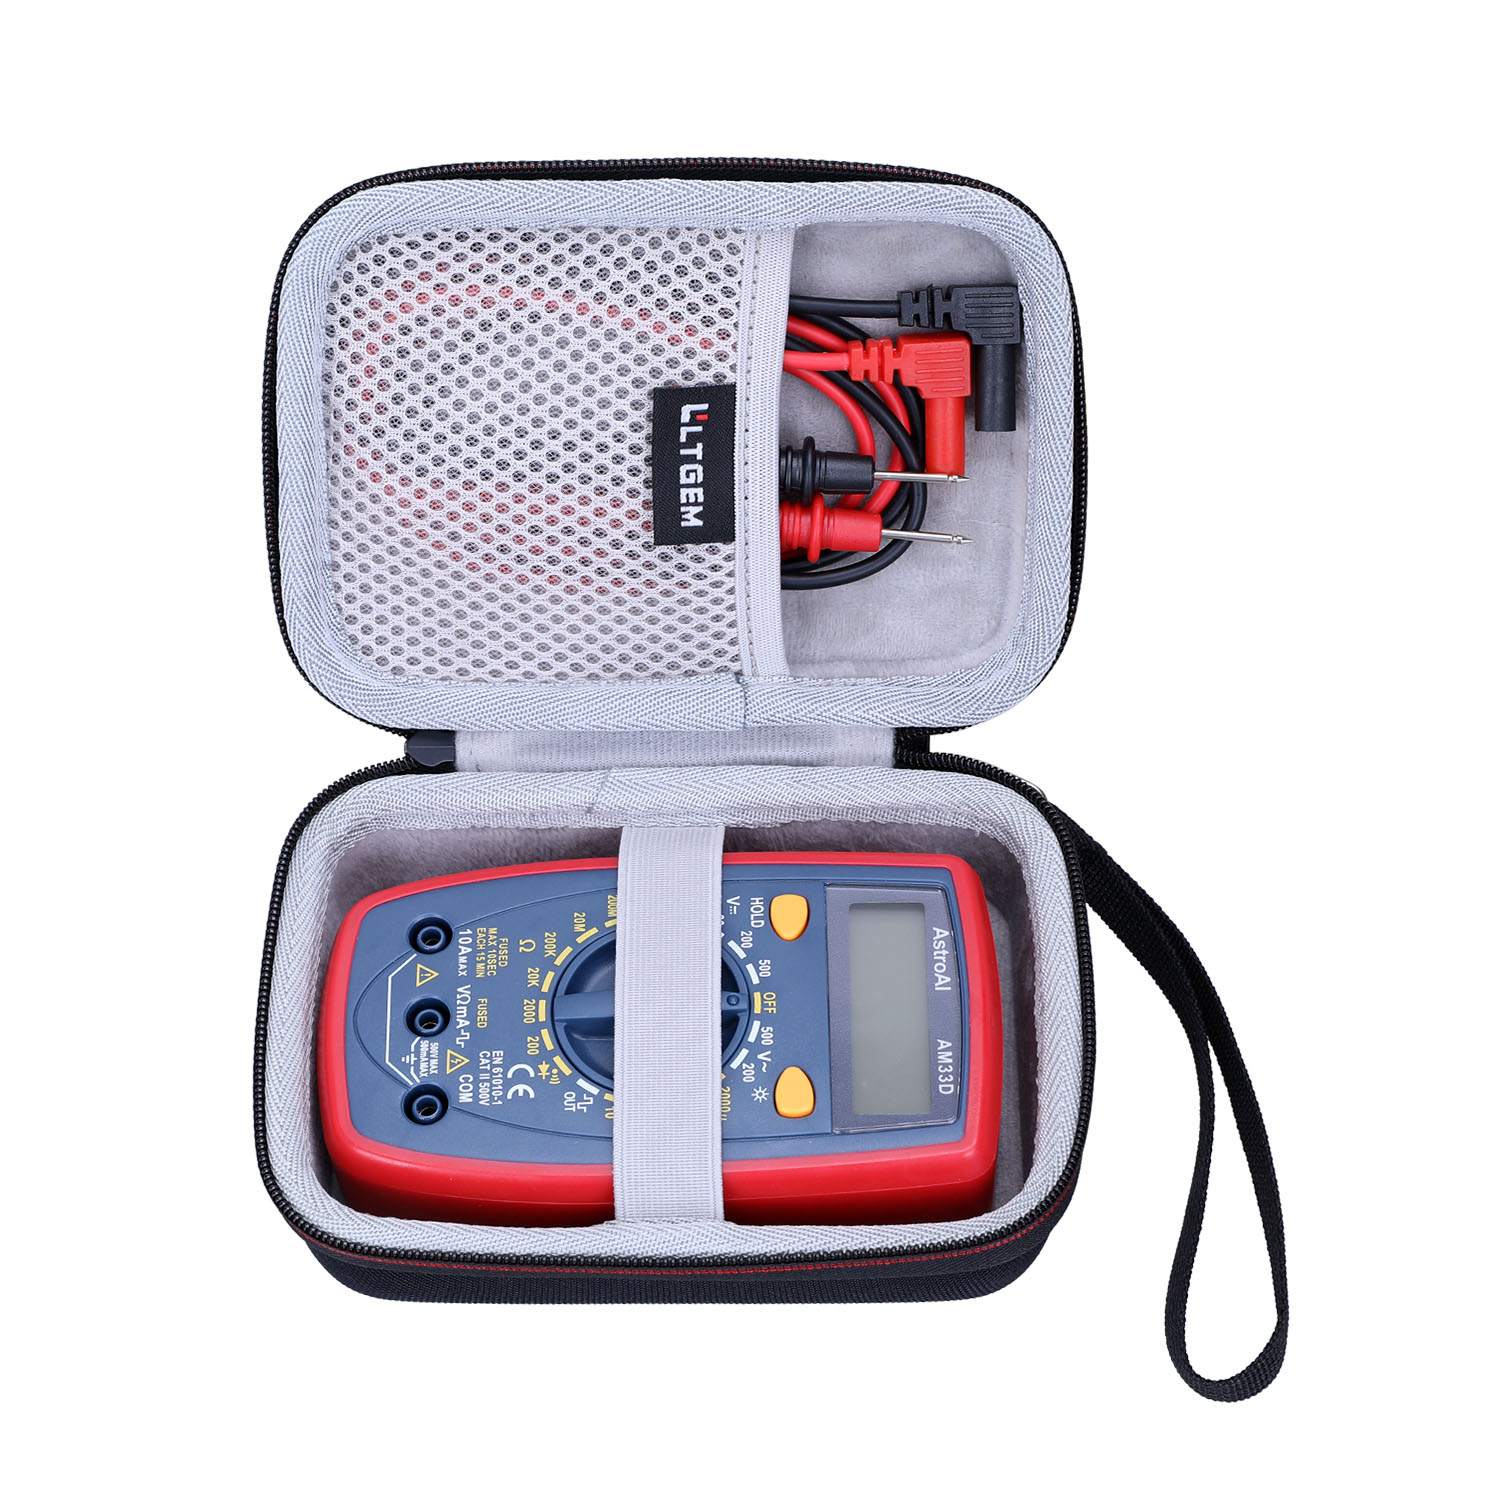 Dual Fused fo Digital Multimeter w// Ohm Volt Amp and Diode Voltage Tester Meter